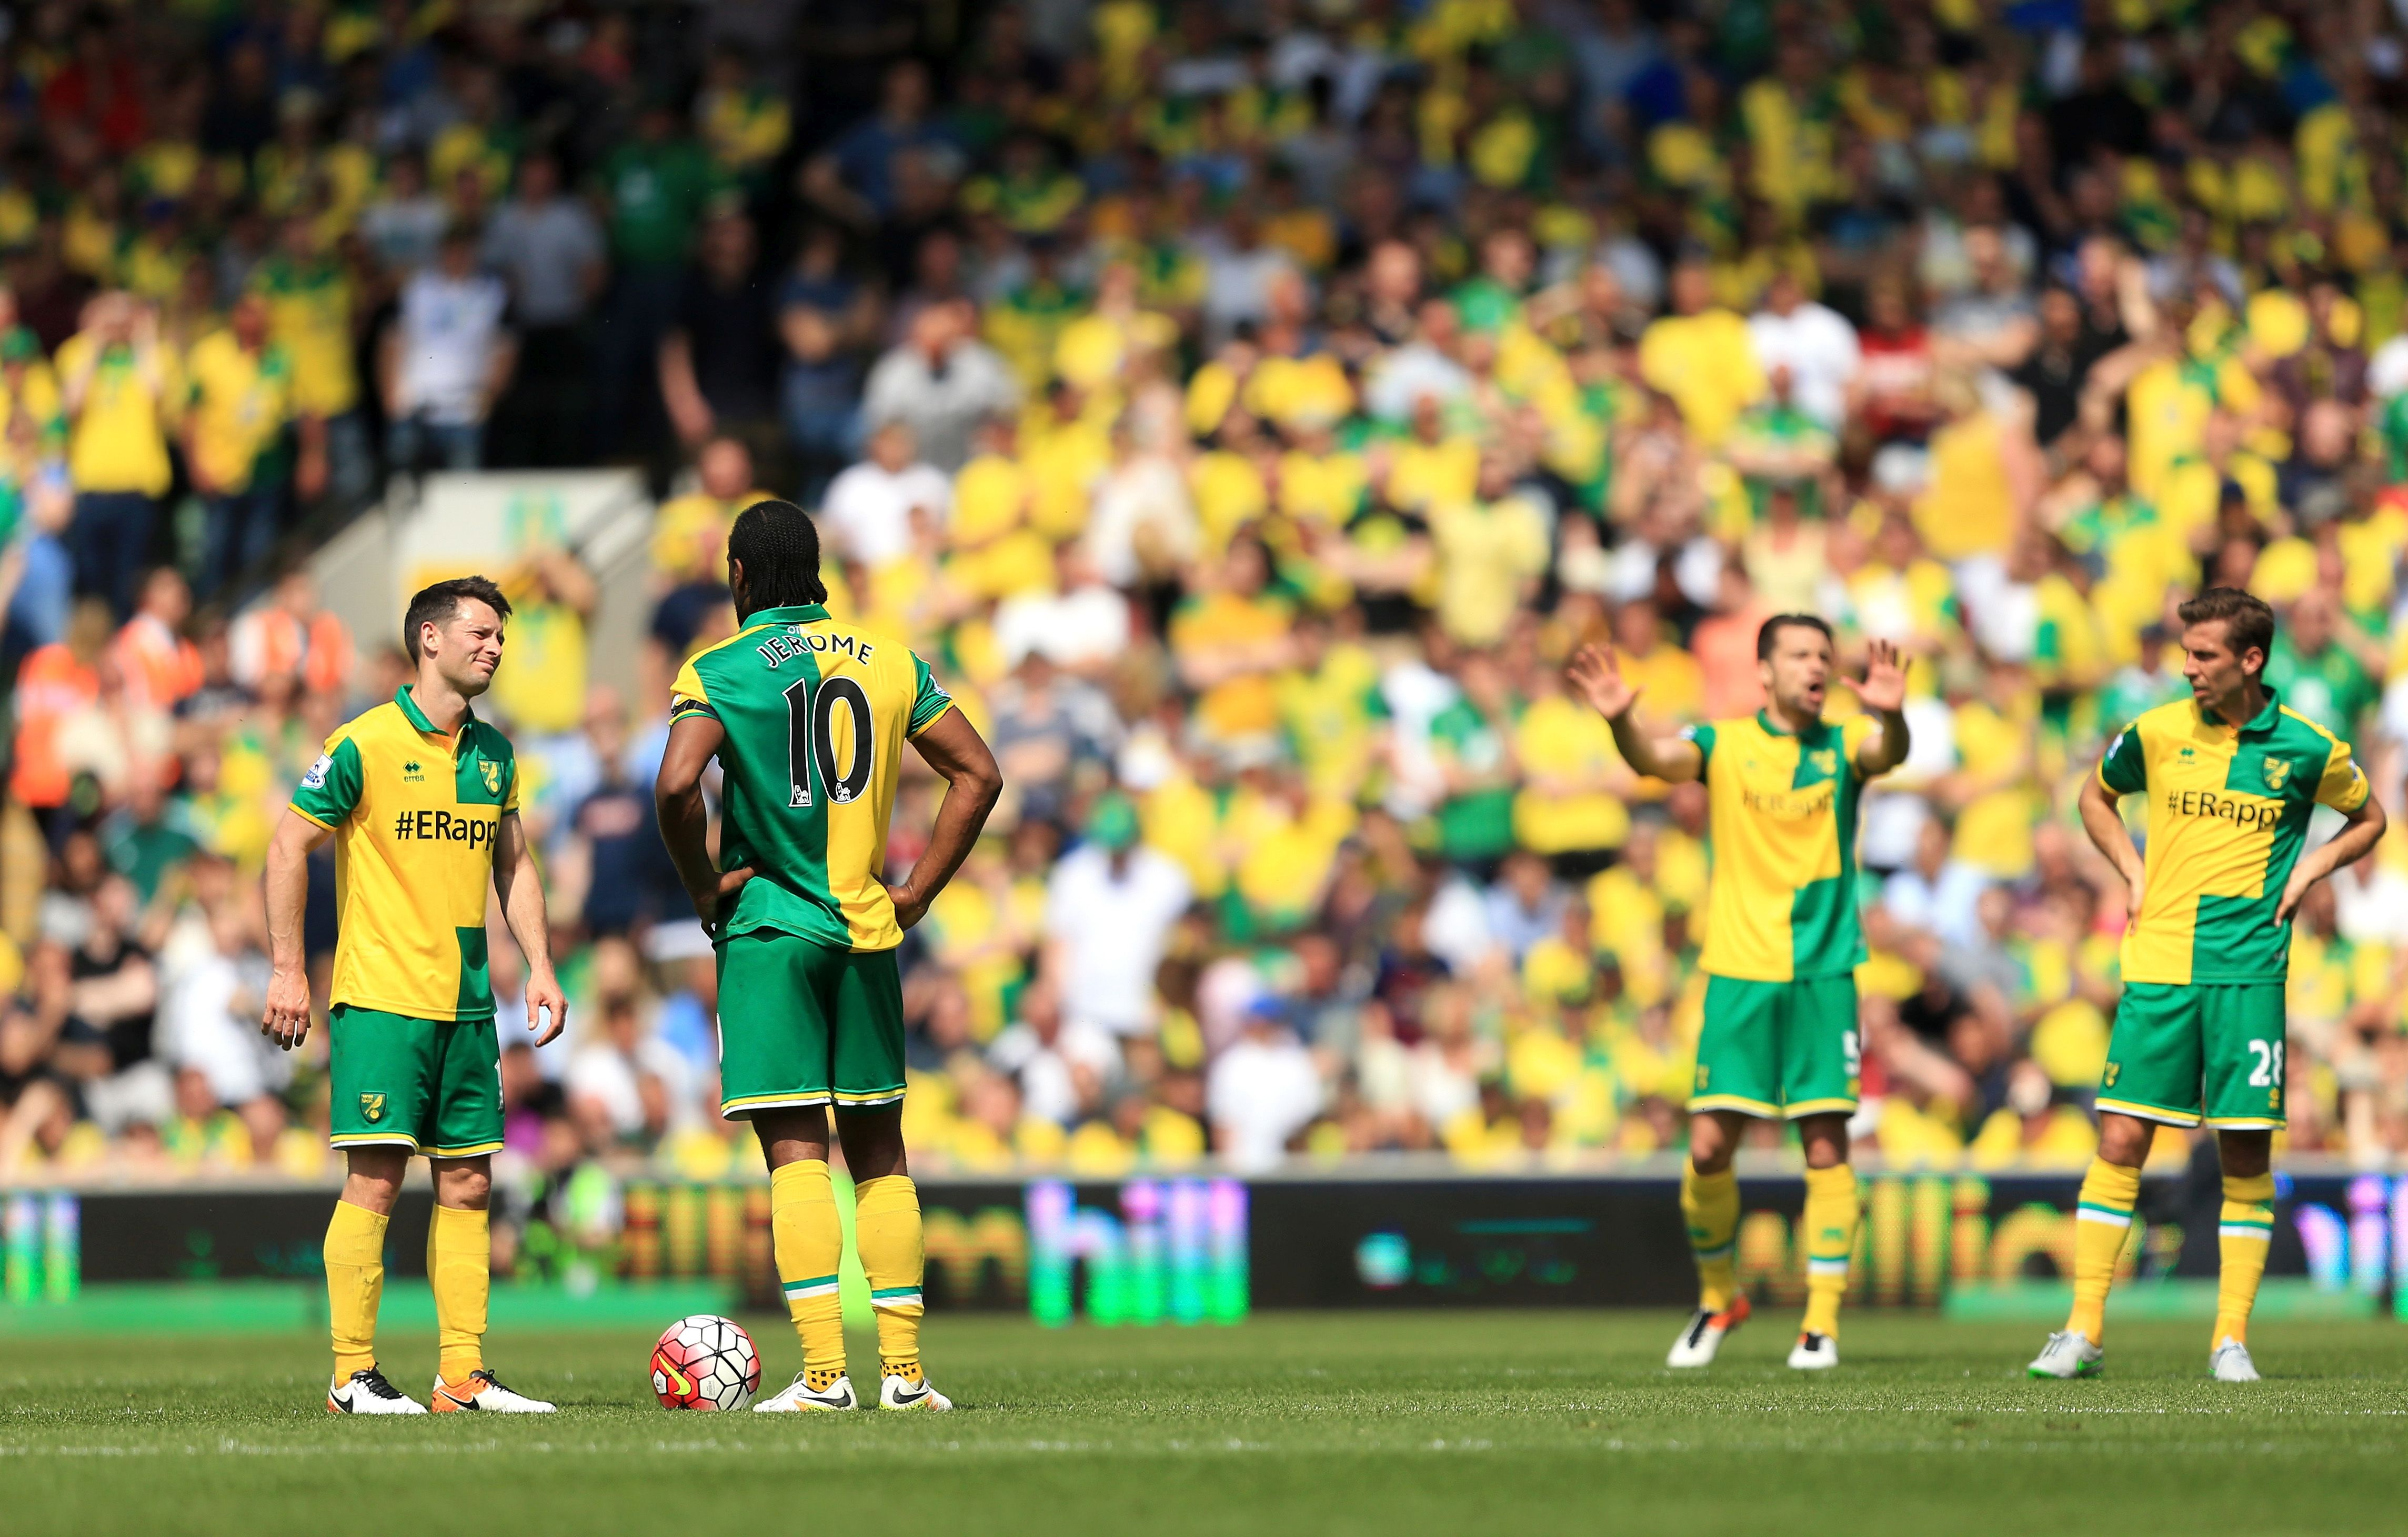 NORWICH, ENGLAND - MAY 07:  Wes Hoolahan (1st L) and Cameron Jerome (2nd L) react after Manchester United's first goal during the Barclays Premier League match between Norwich City and Manchester United at Carrow Road on May 7, 2016 in Norwich, England.  (Photo by Stephen Pond/Getty Images)